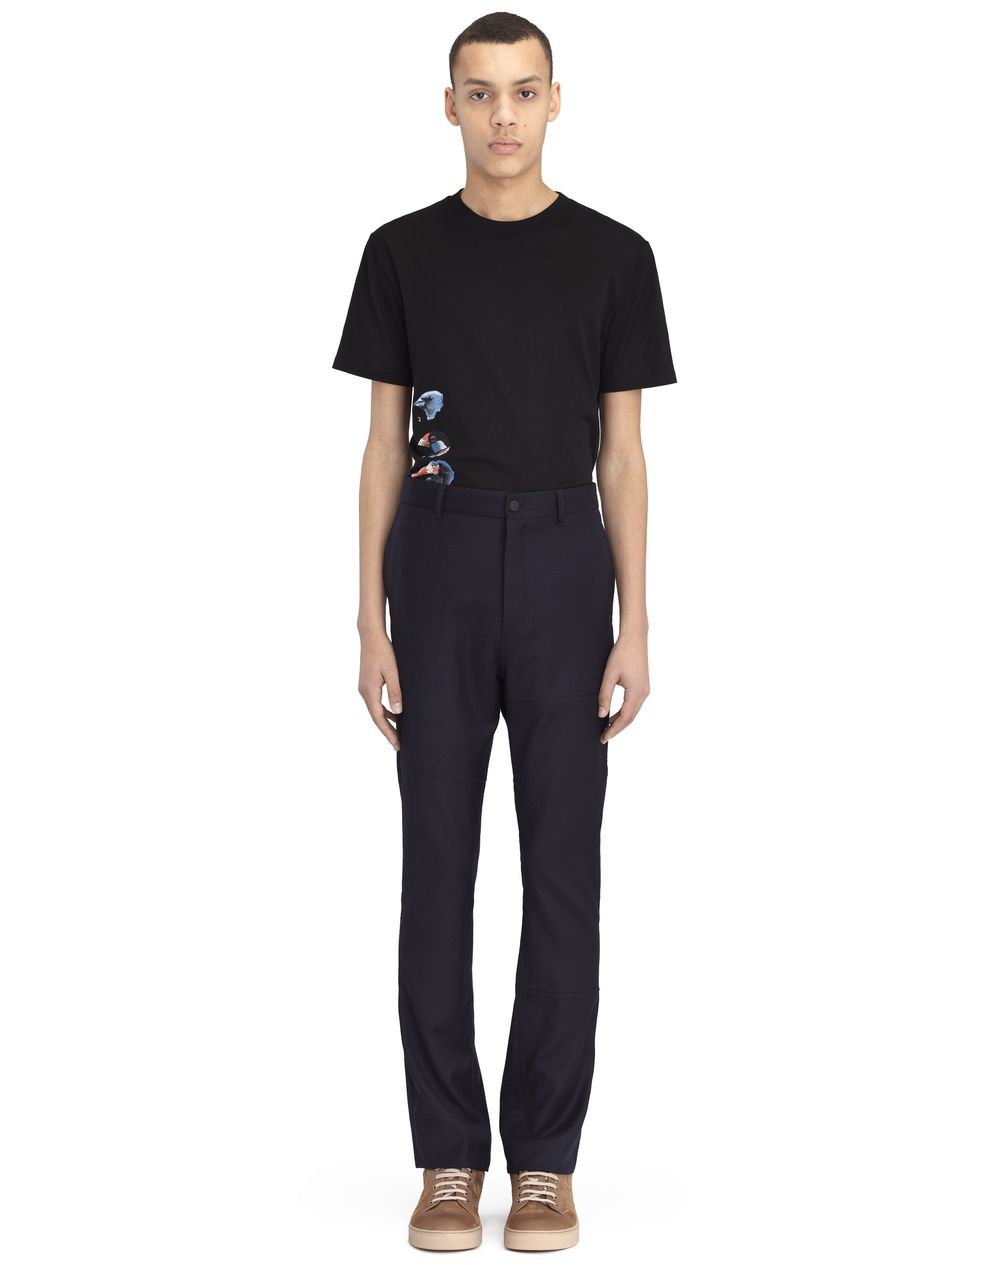 PANTS WITH RAW-EDGED SEAMING - Lanvin